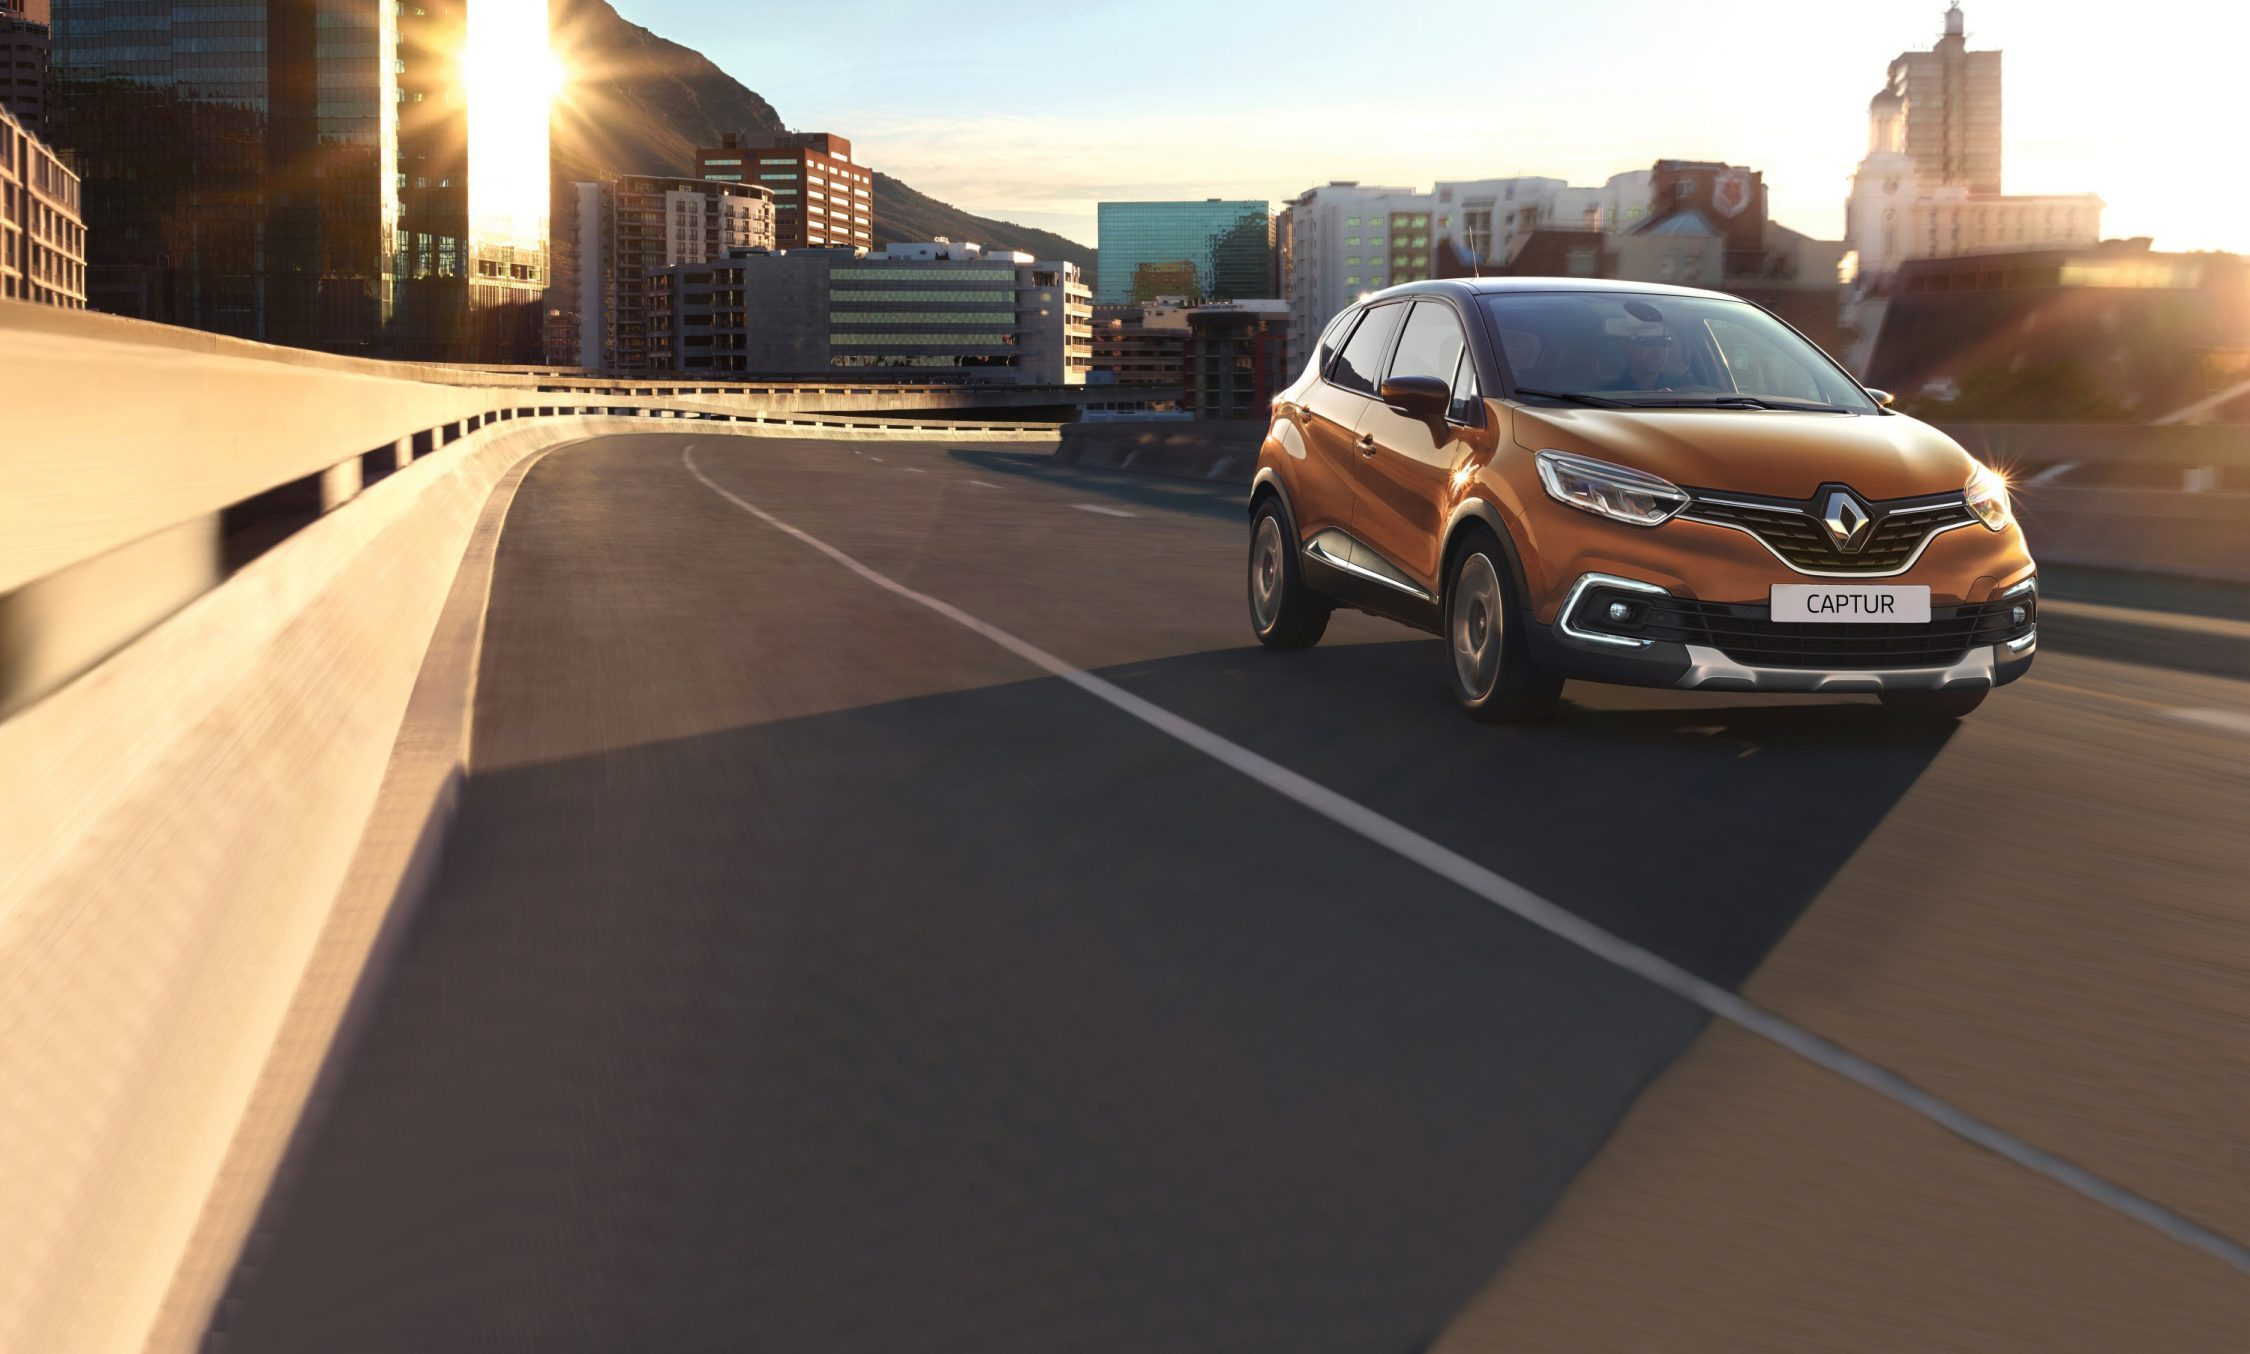 renault-captur-ph2-herozone-desktop_v2.jpg.ximg.l_full_h.smart